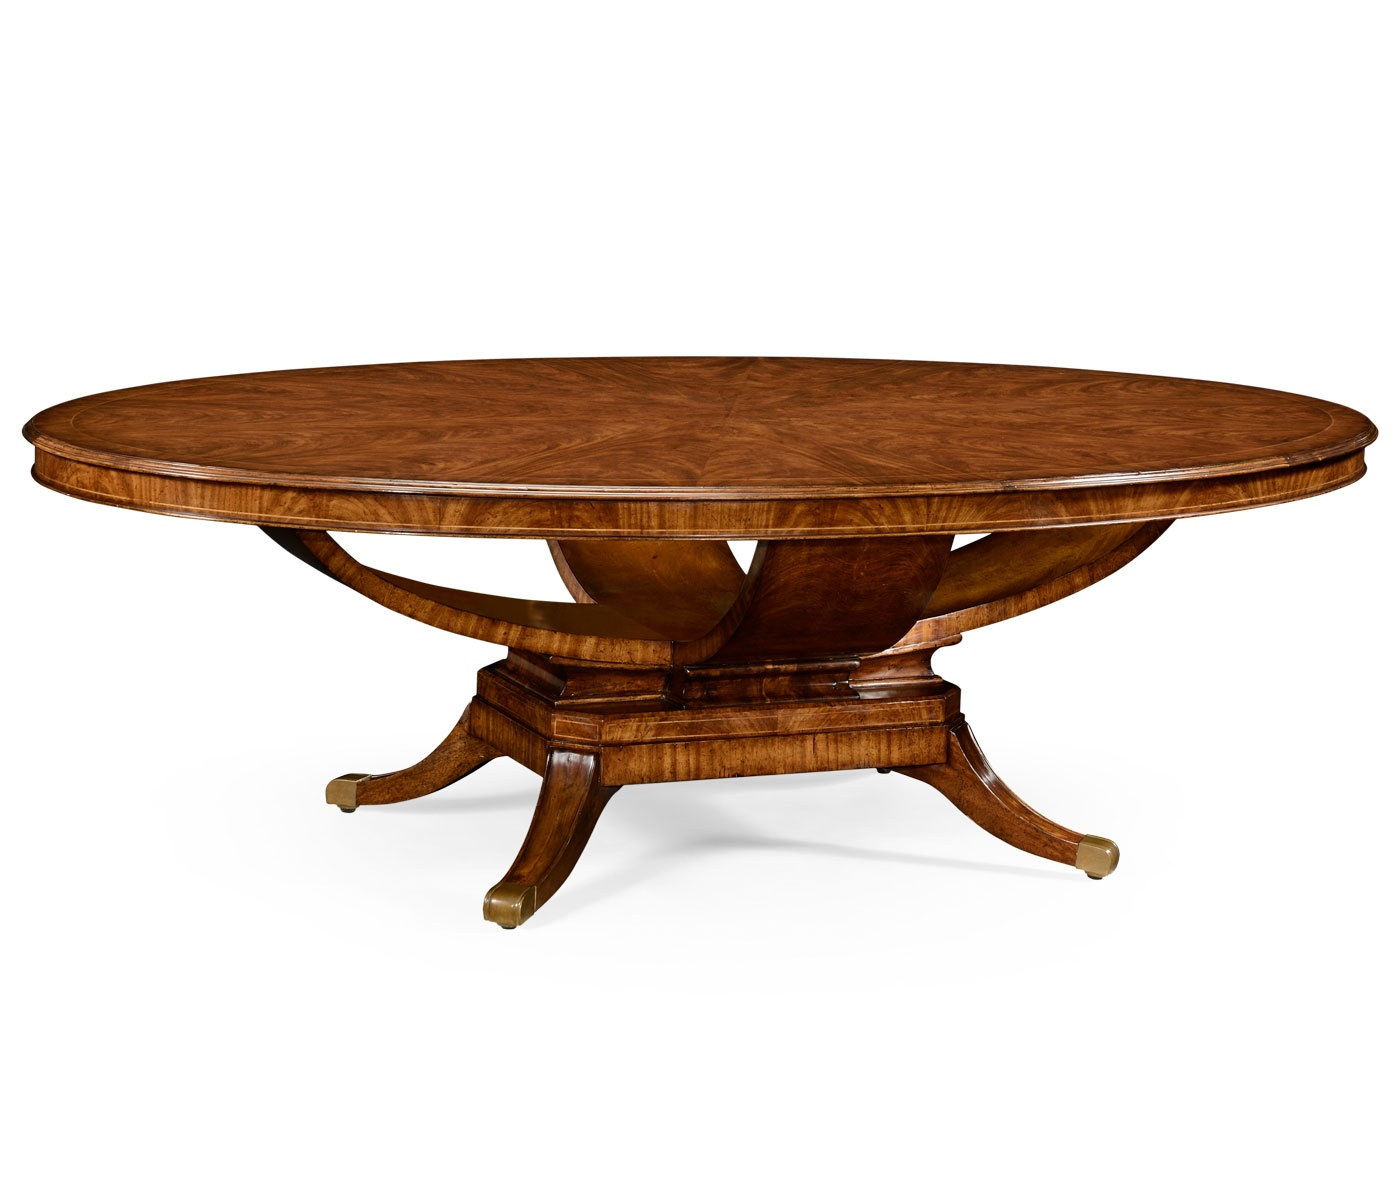 8 seater oval dining table walnut swanky interiors for Oval dining table